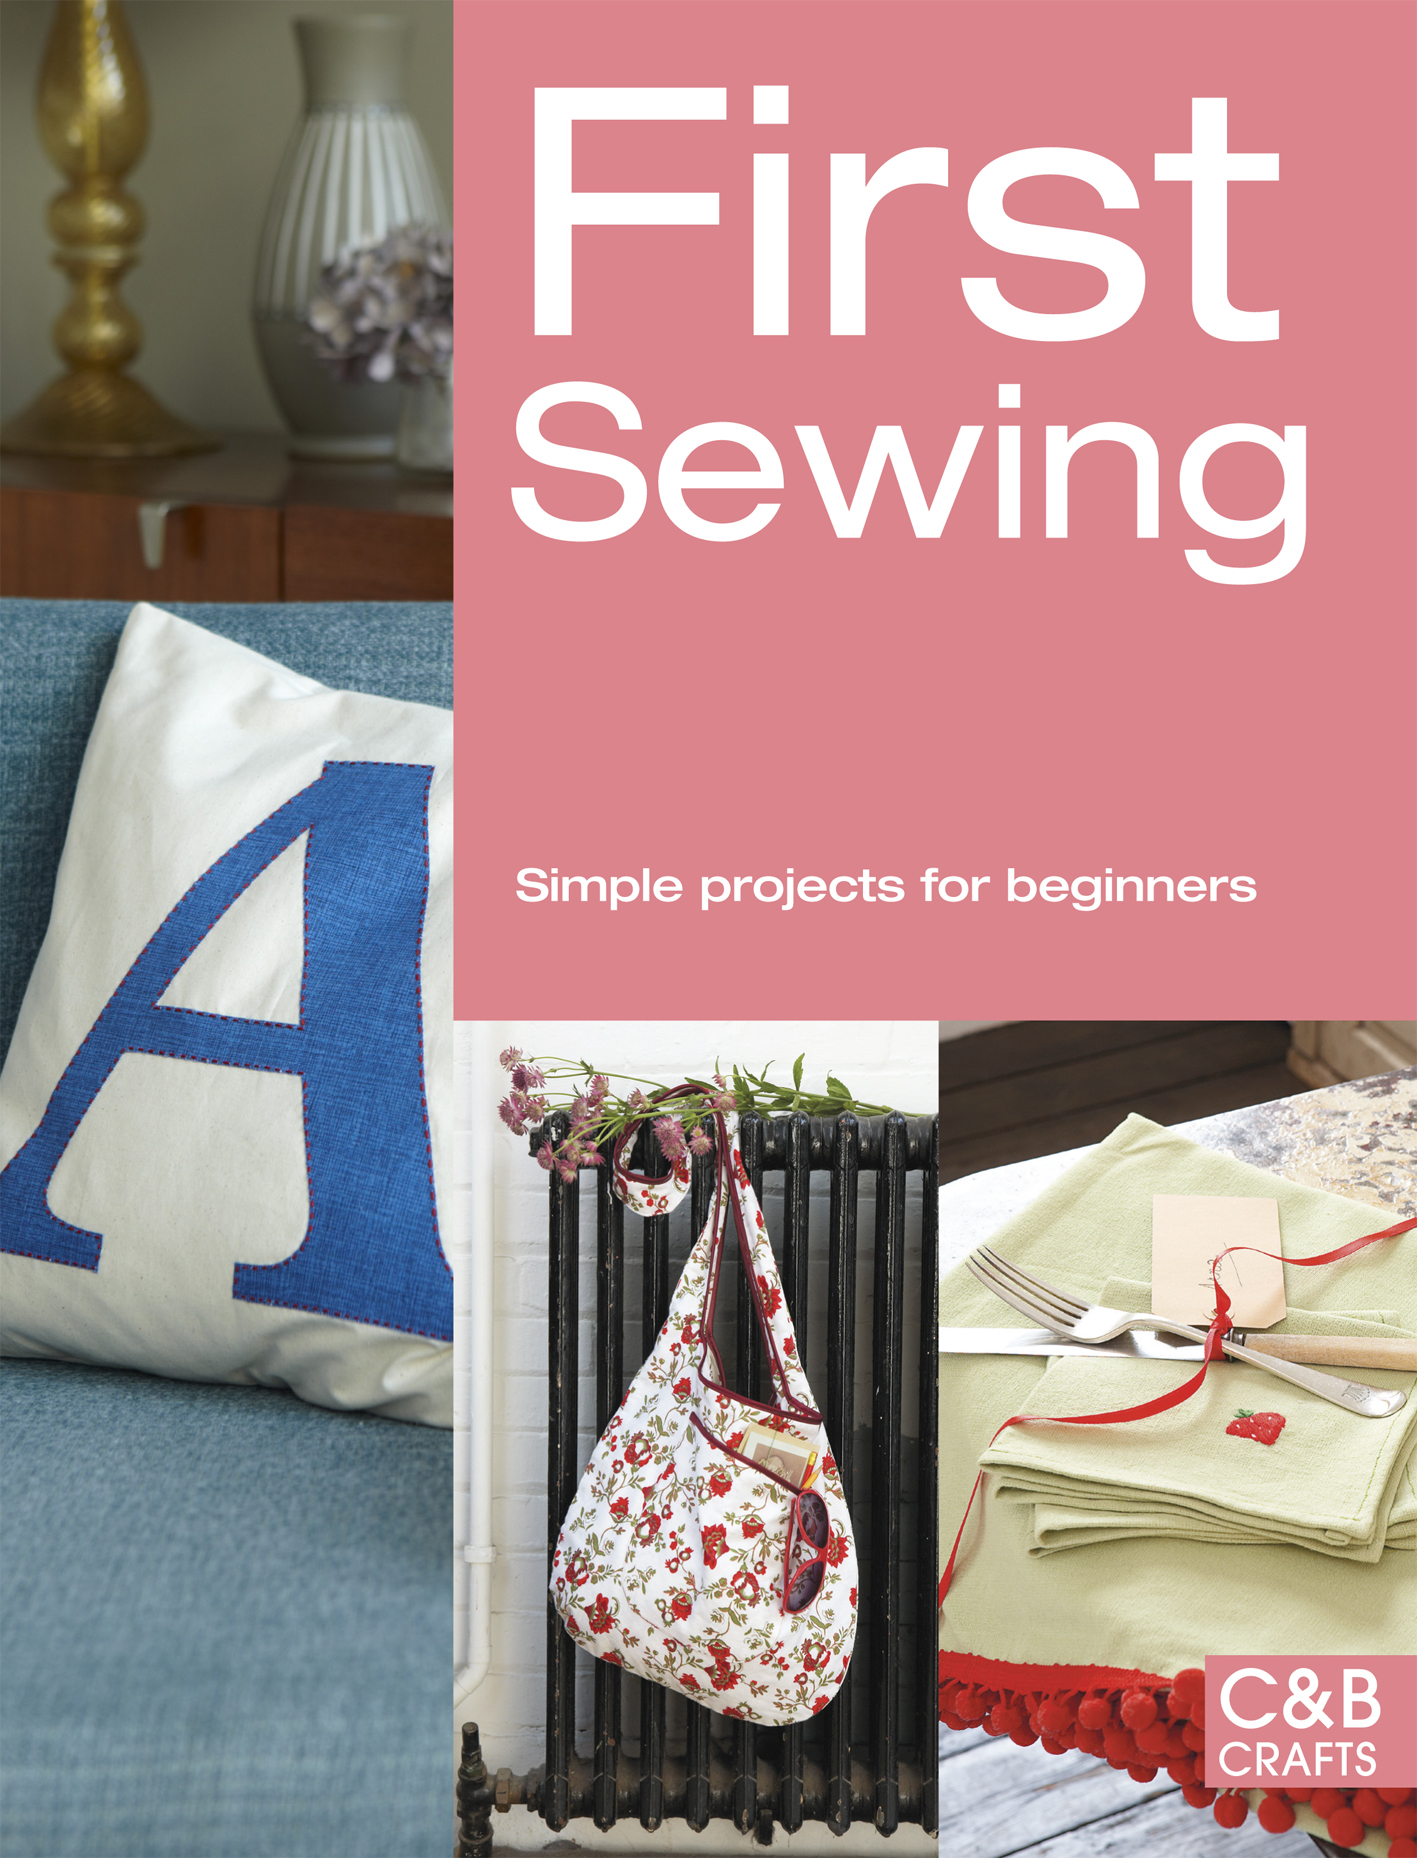 First Sewing